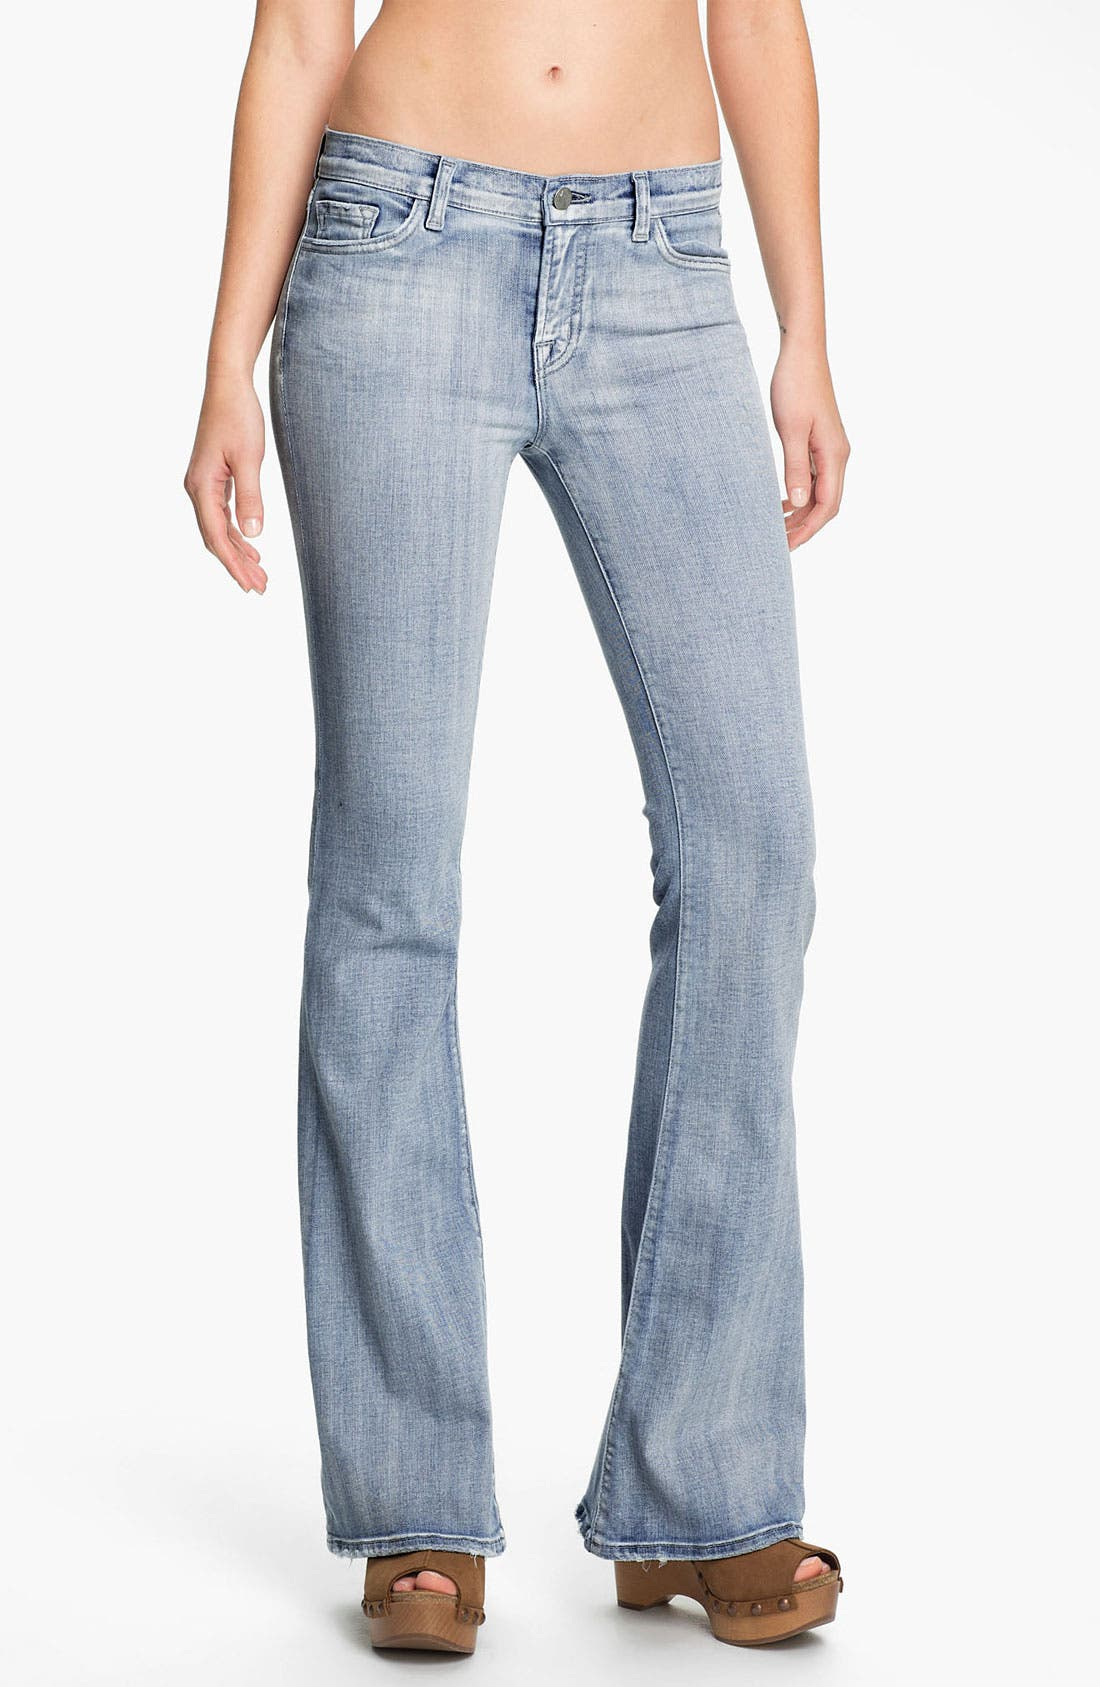 Main Image - J Brand 'Babe' Flare Leg Jeans (Afterlife)